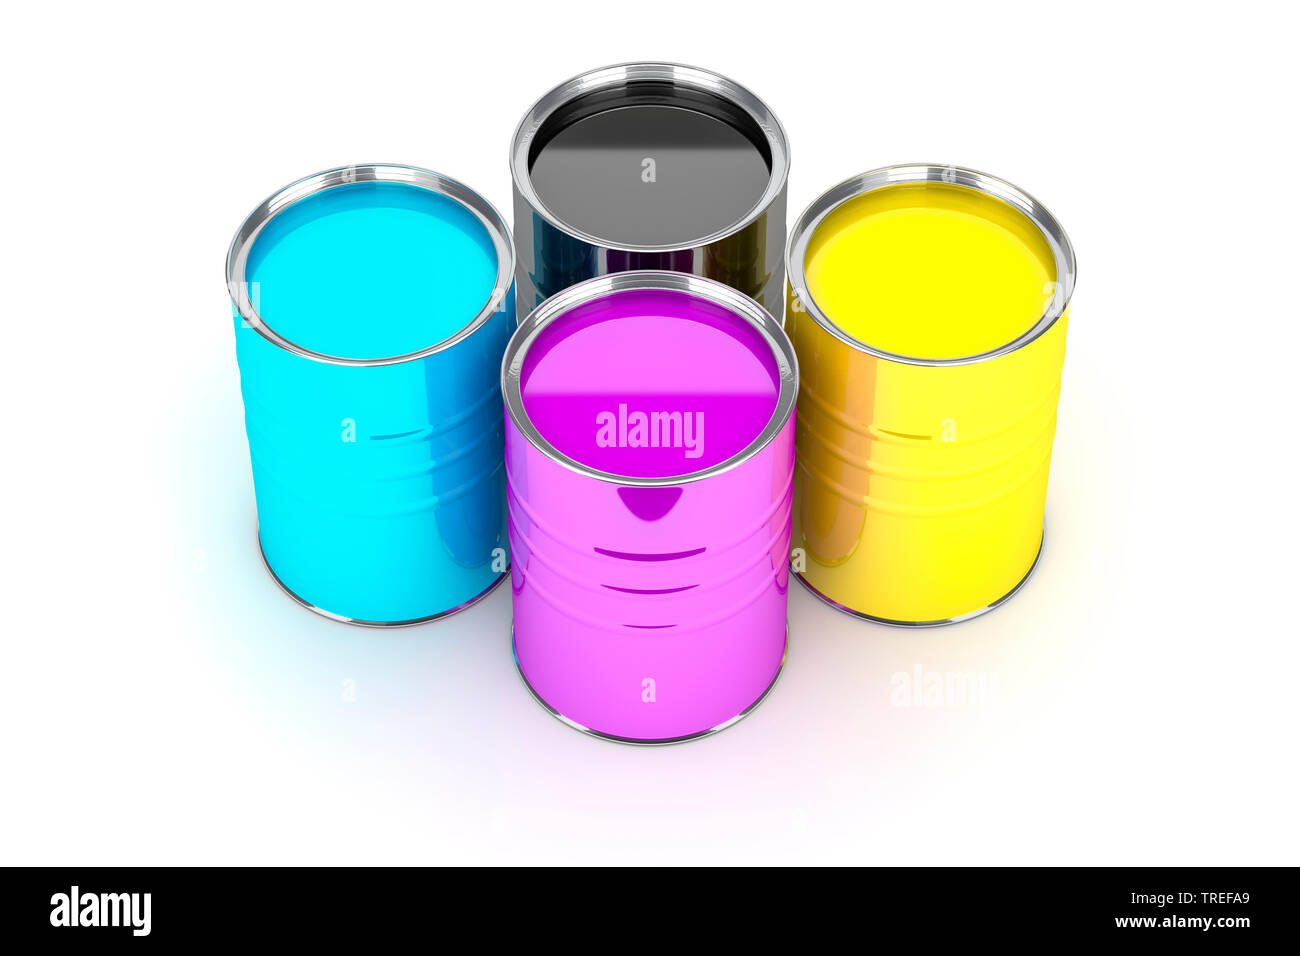 Vier Farbeimer in den Farben des CMYK-Farbmodells vor weissem Hintergrund | Four paint pots with paint in the CMYK colors on white surface | BLWS52516 - Stock Image